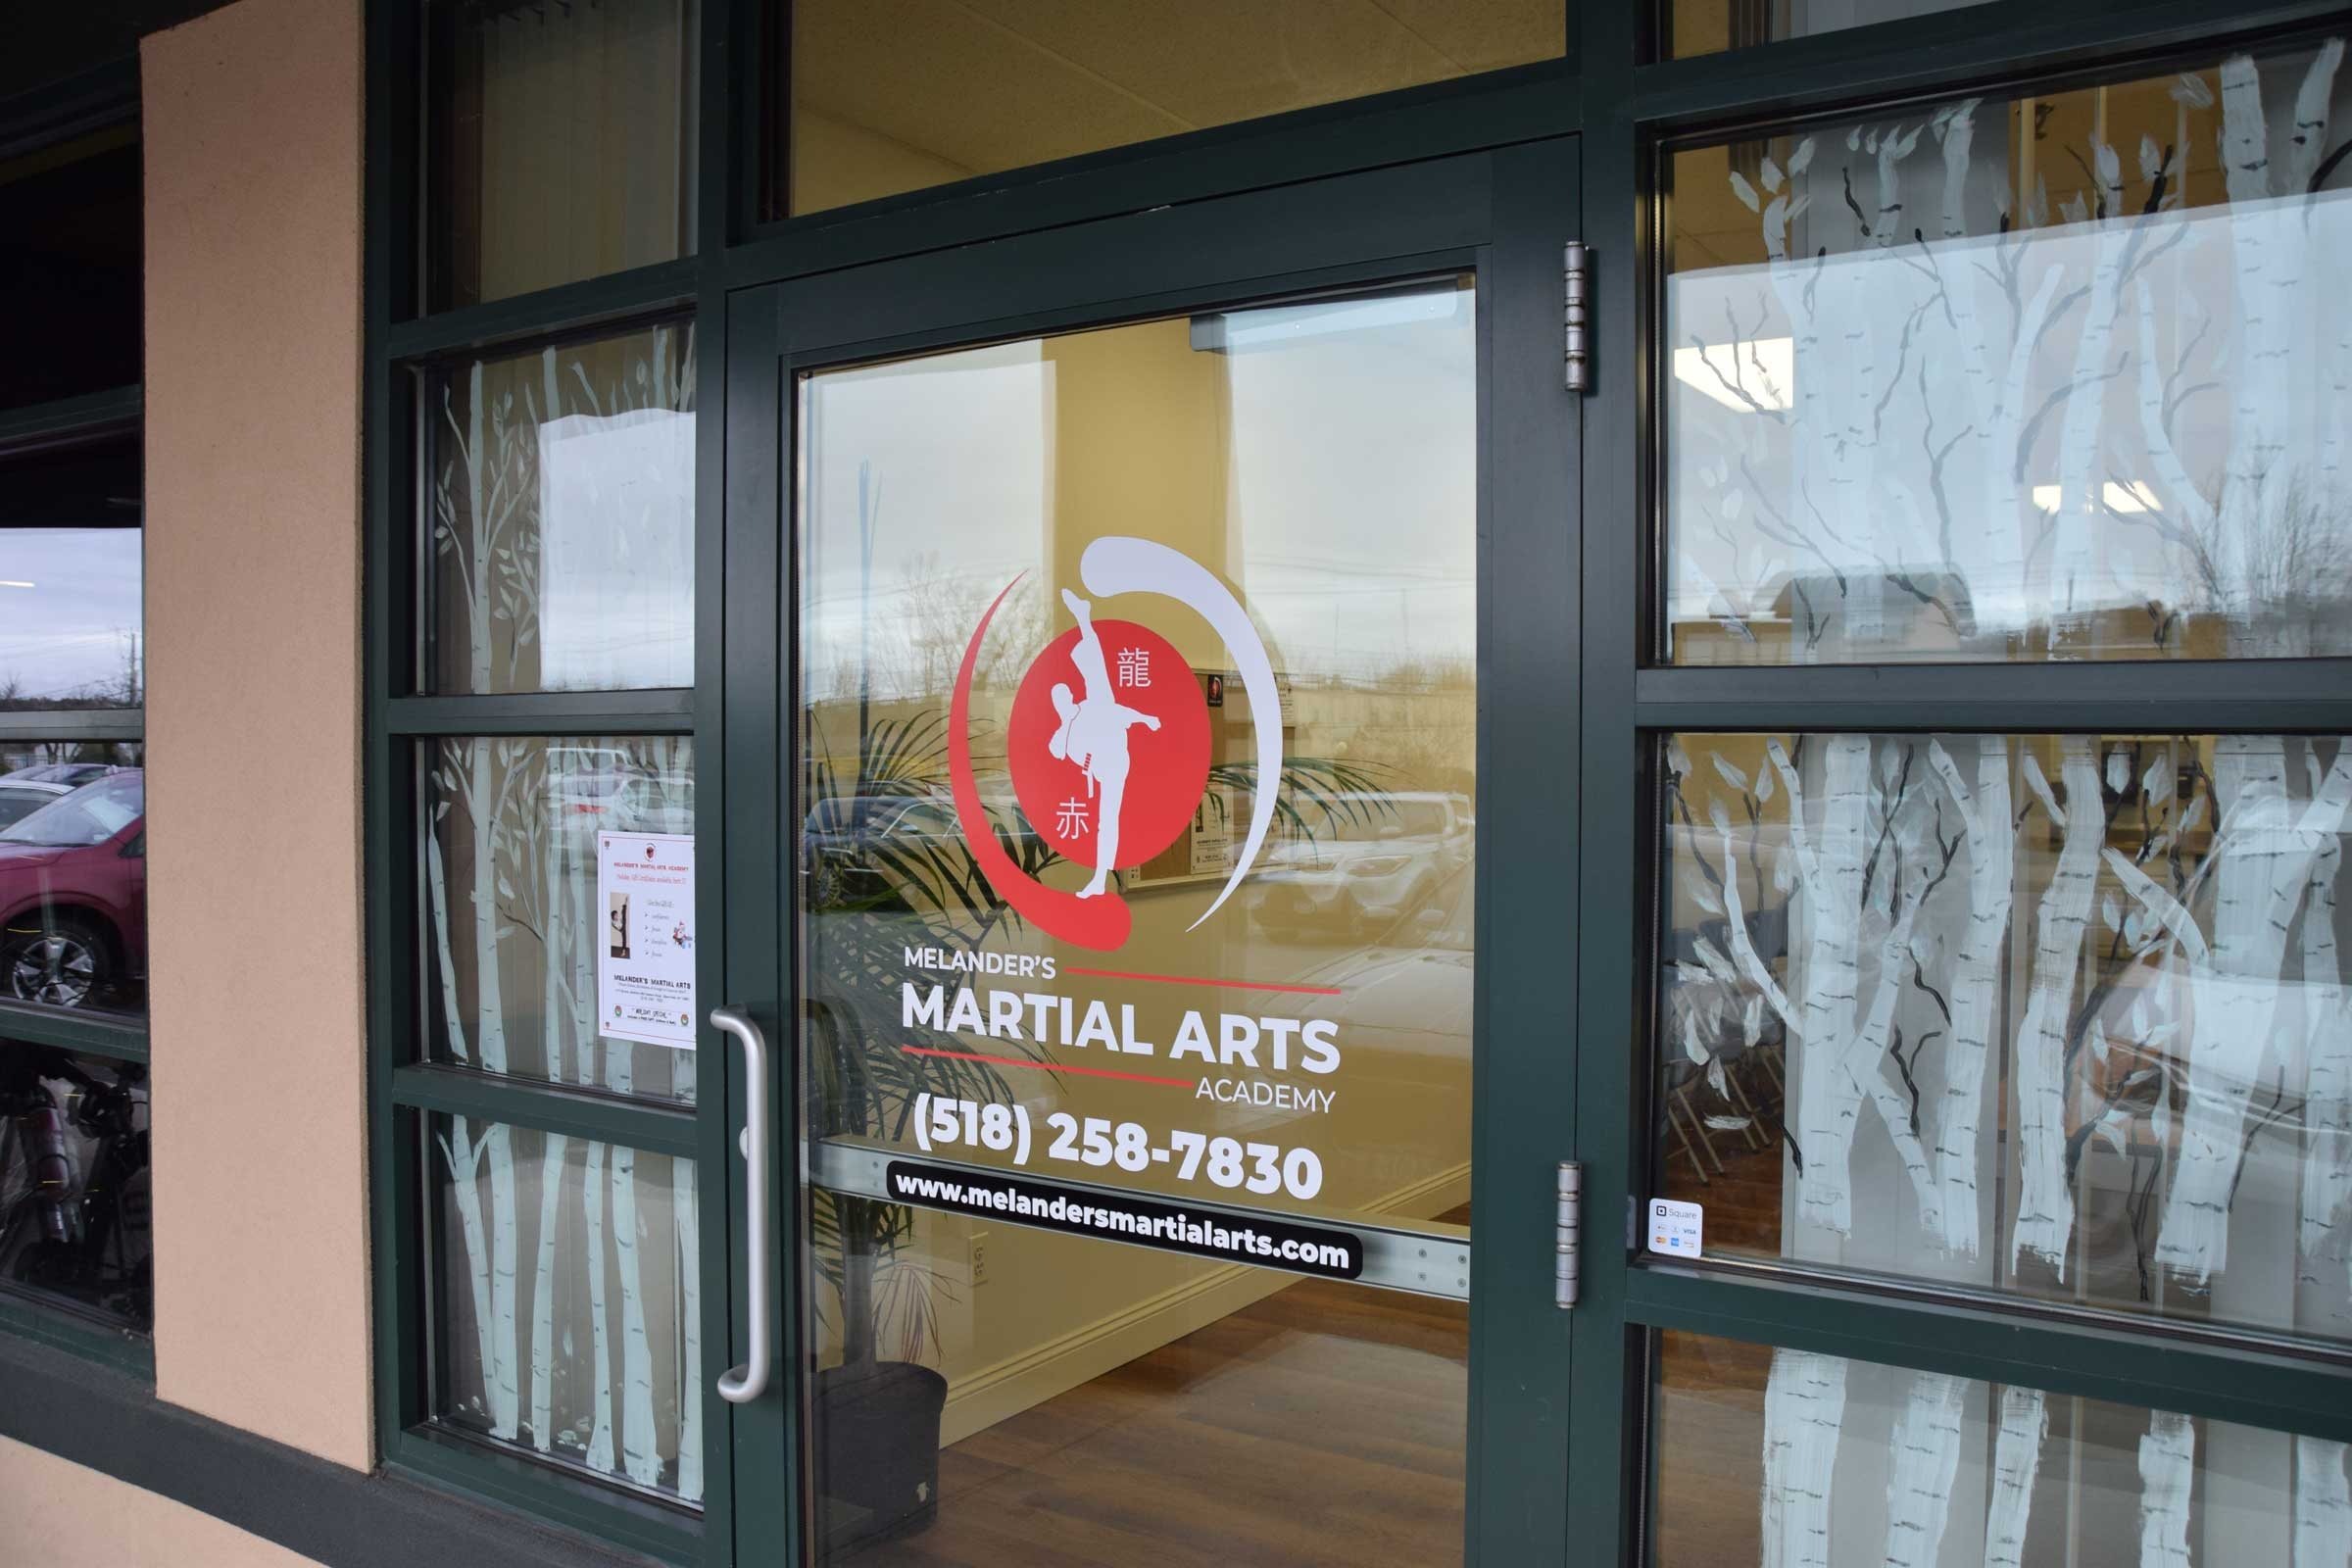 Photo of signage created for Melanders Martial Arts Academy in Glens Falls, New York.